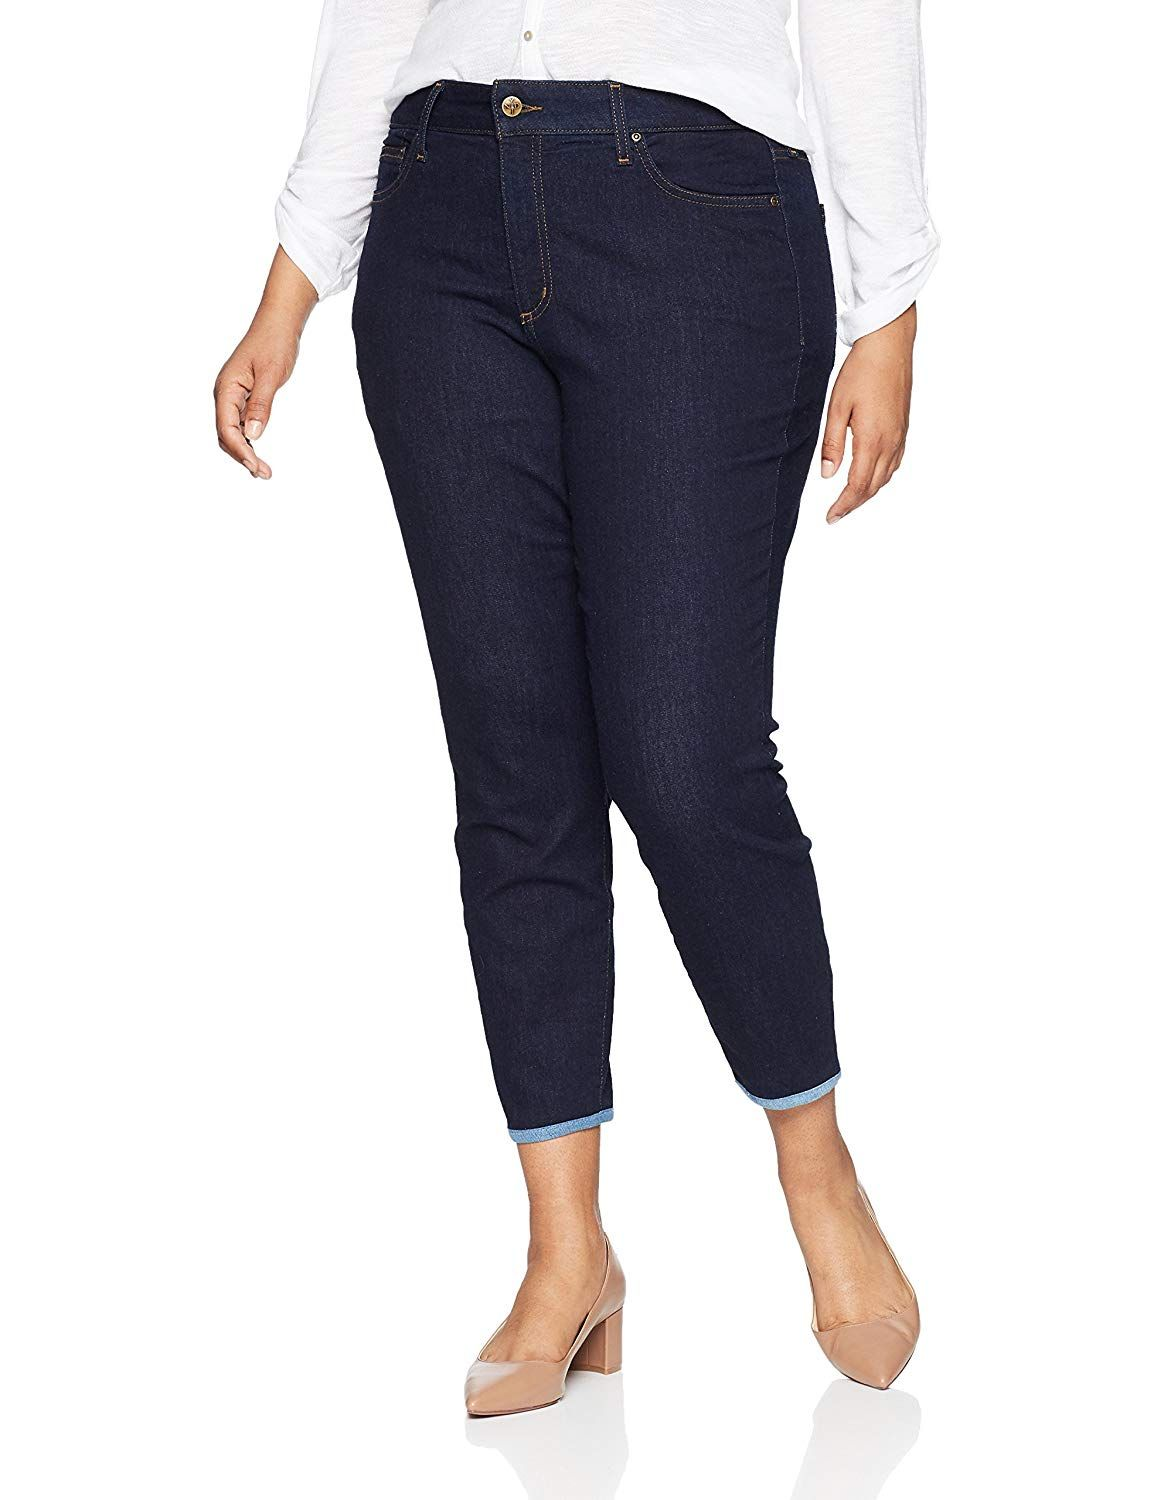 NYDJ Womens Plus Size Alina Ankle Jeans